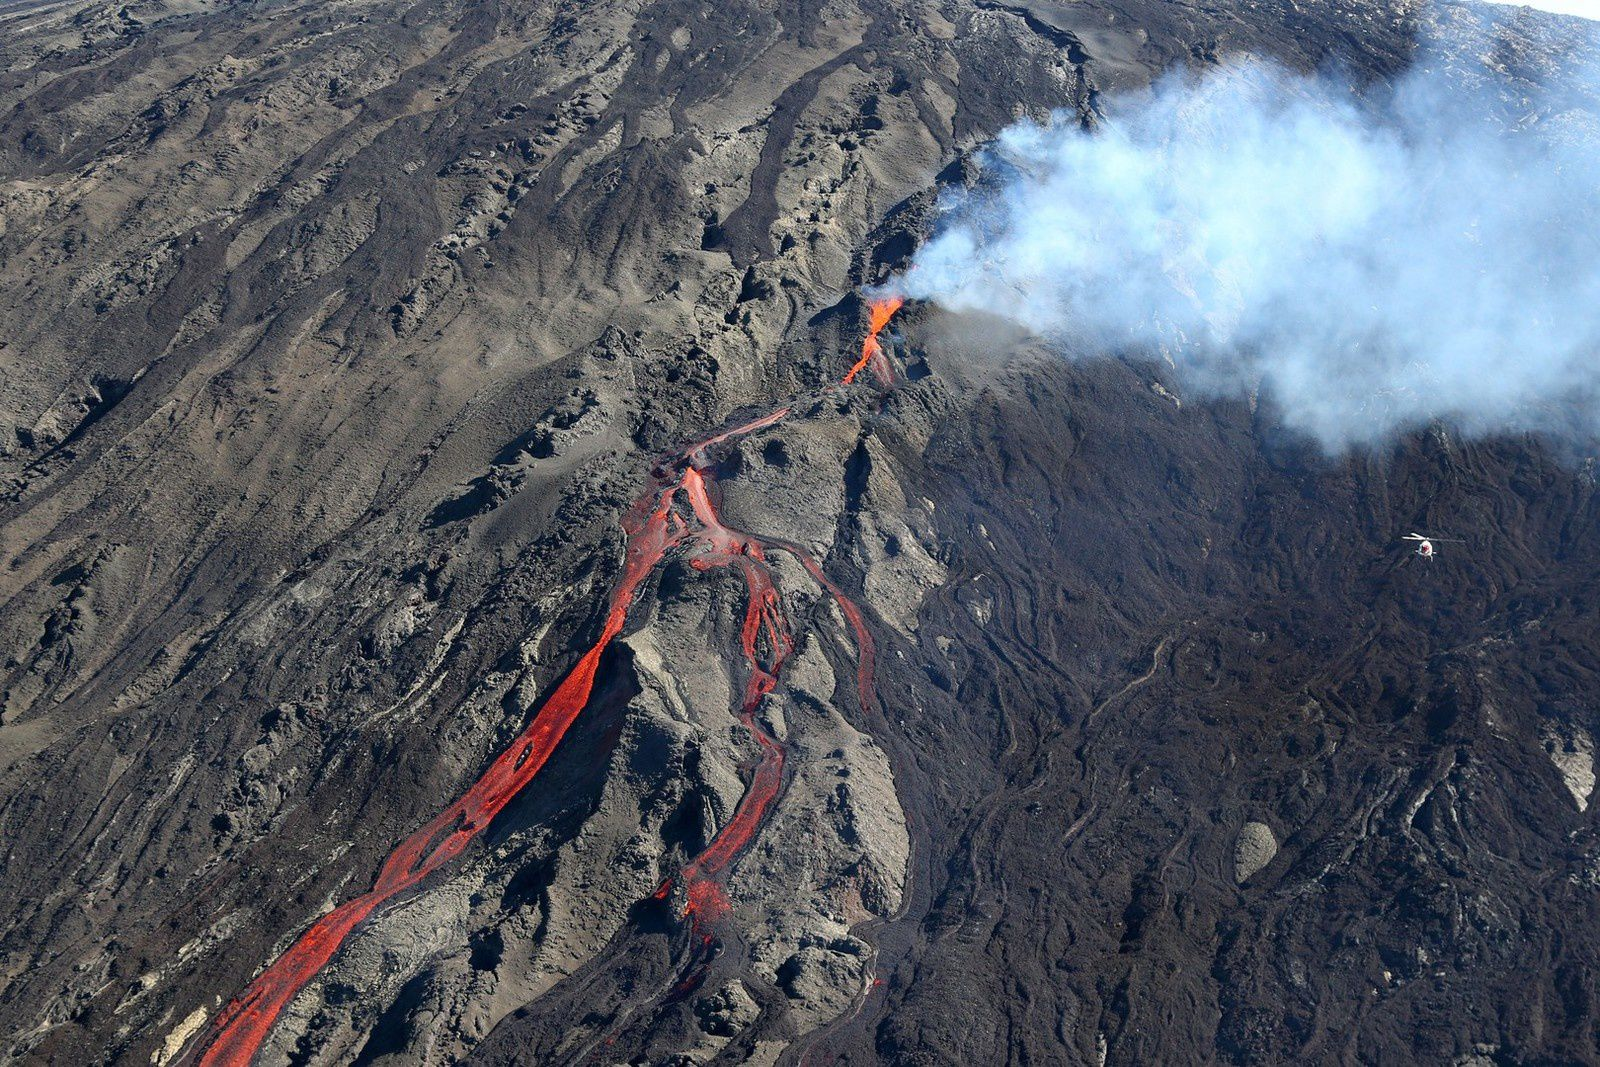 Reunion - eruption of Piton de la Fournaise - 21/06/2014 - the chopper right gives the scale - photo Richard Bouhet / AFP